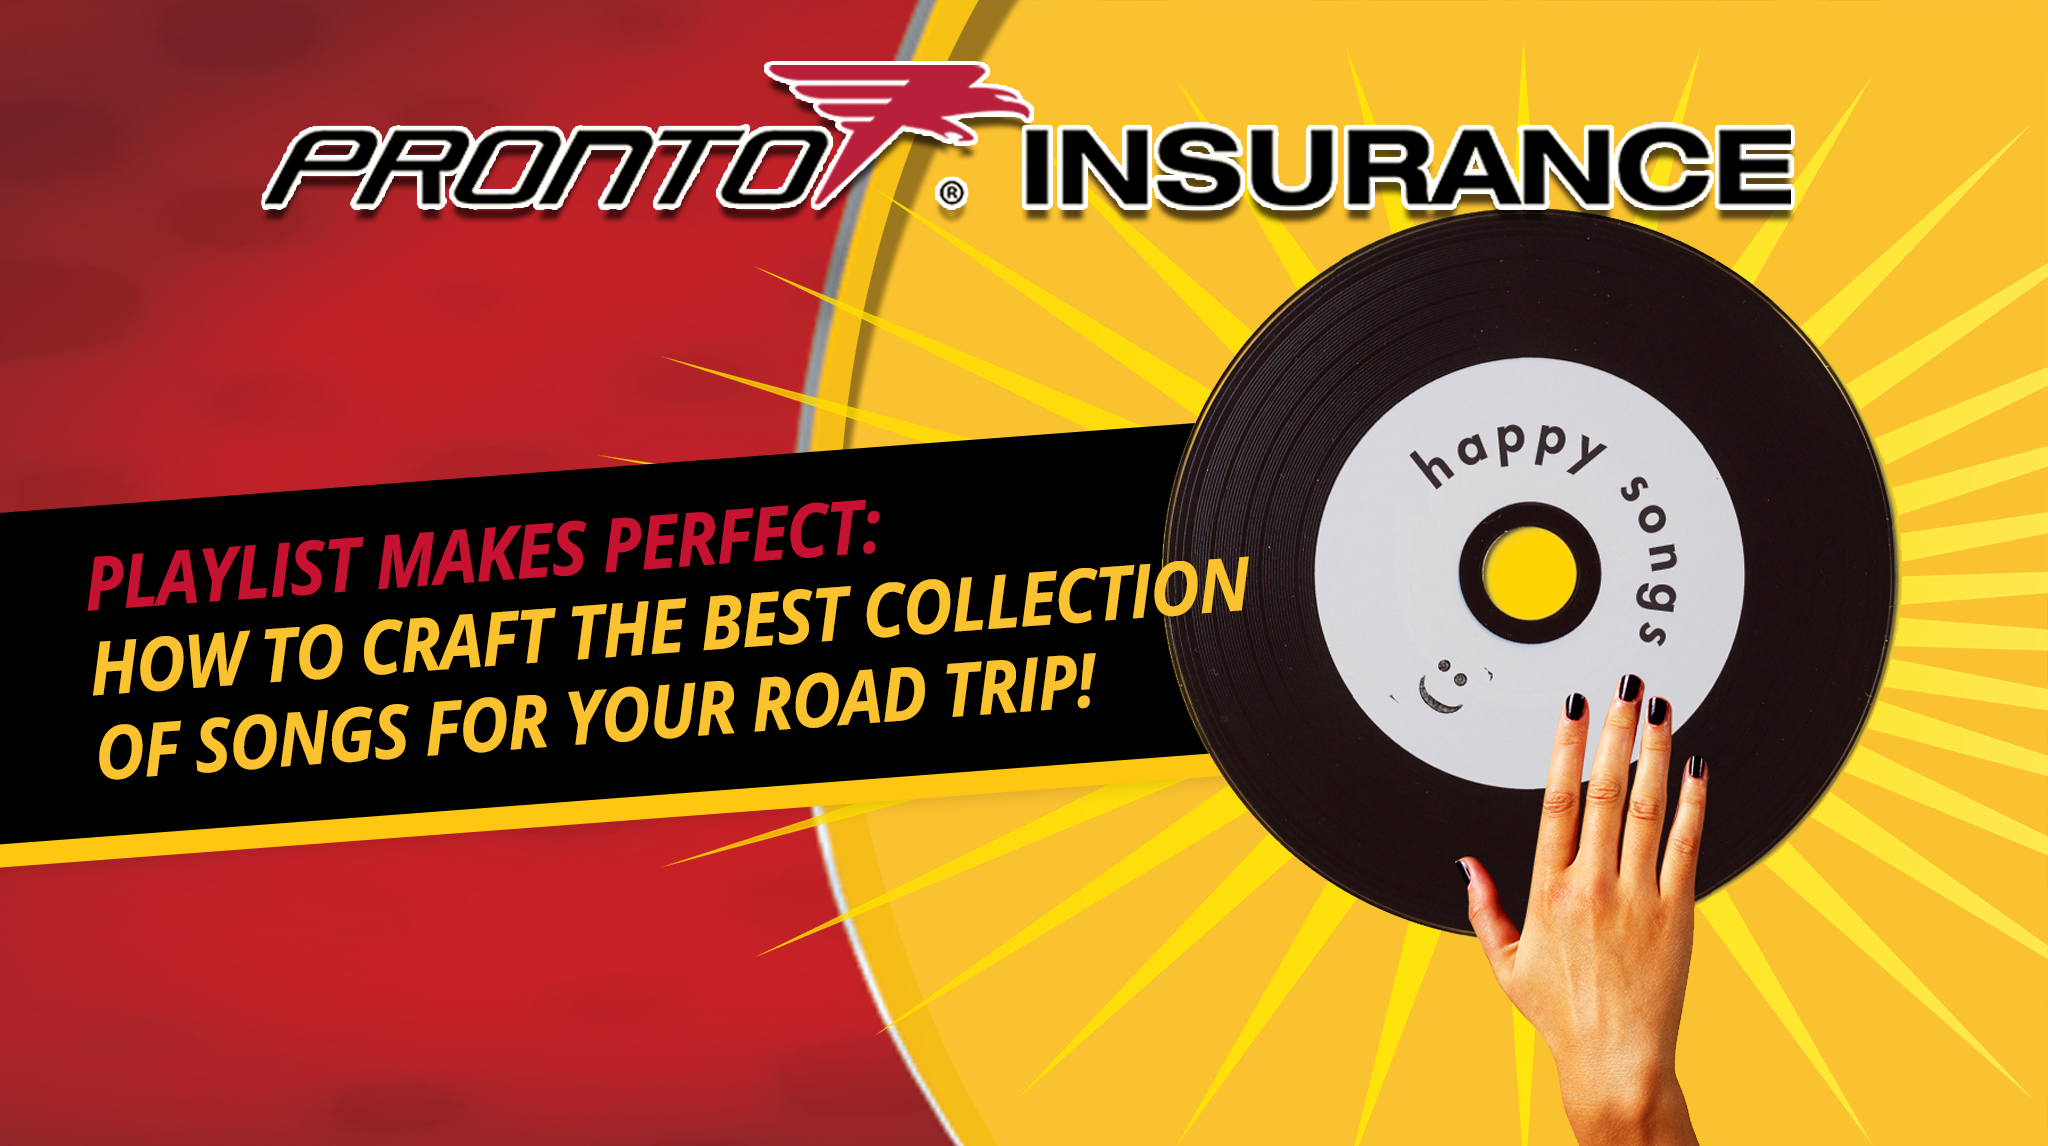 Playlist Makes Perfect: How to Craft the Best Collection of Songs for Your Road Trip!